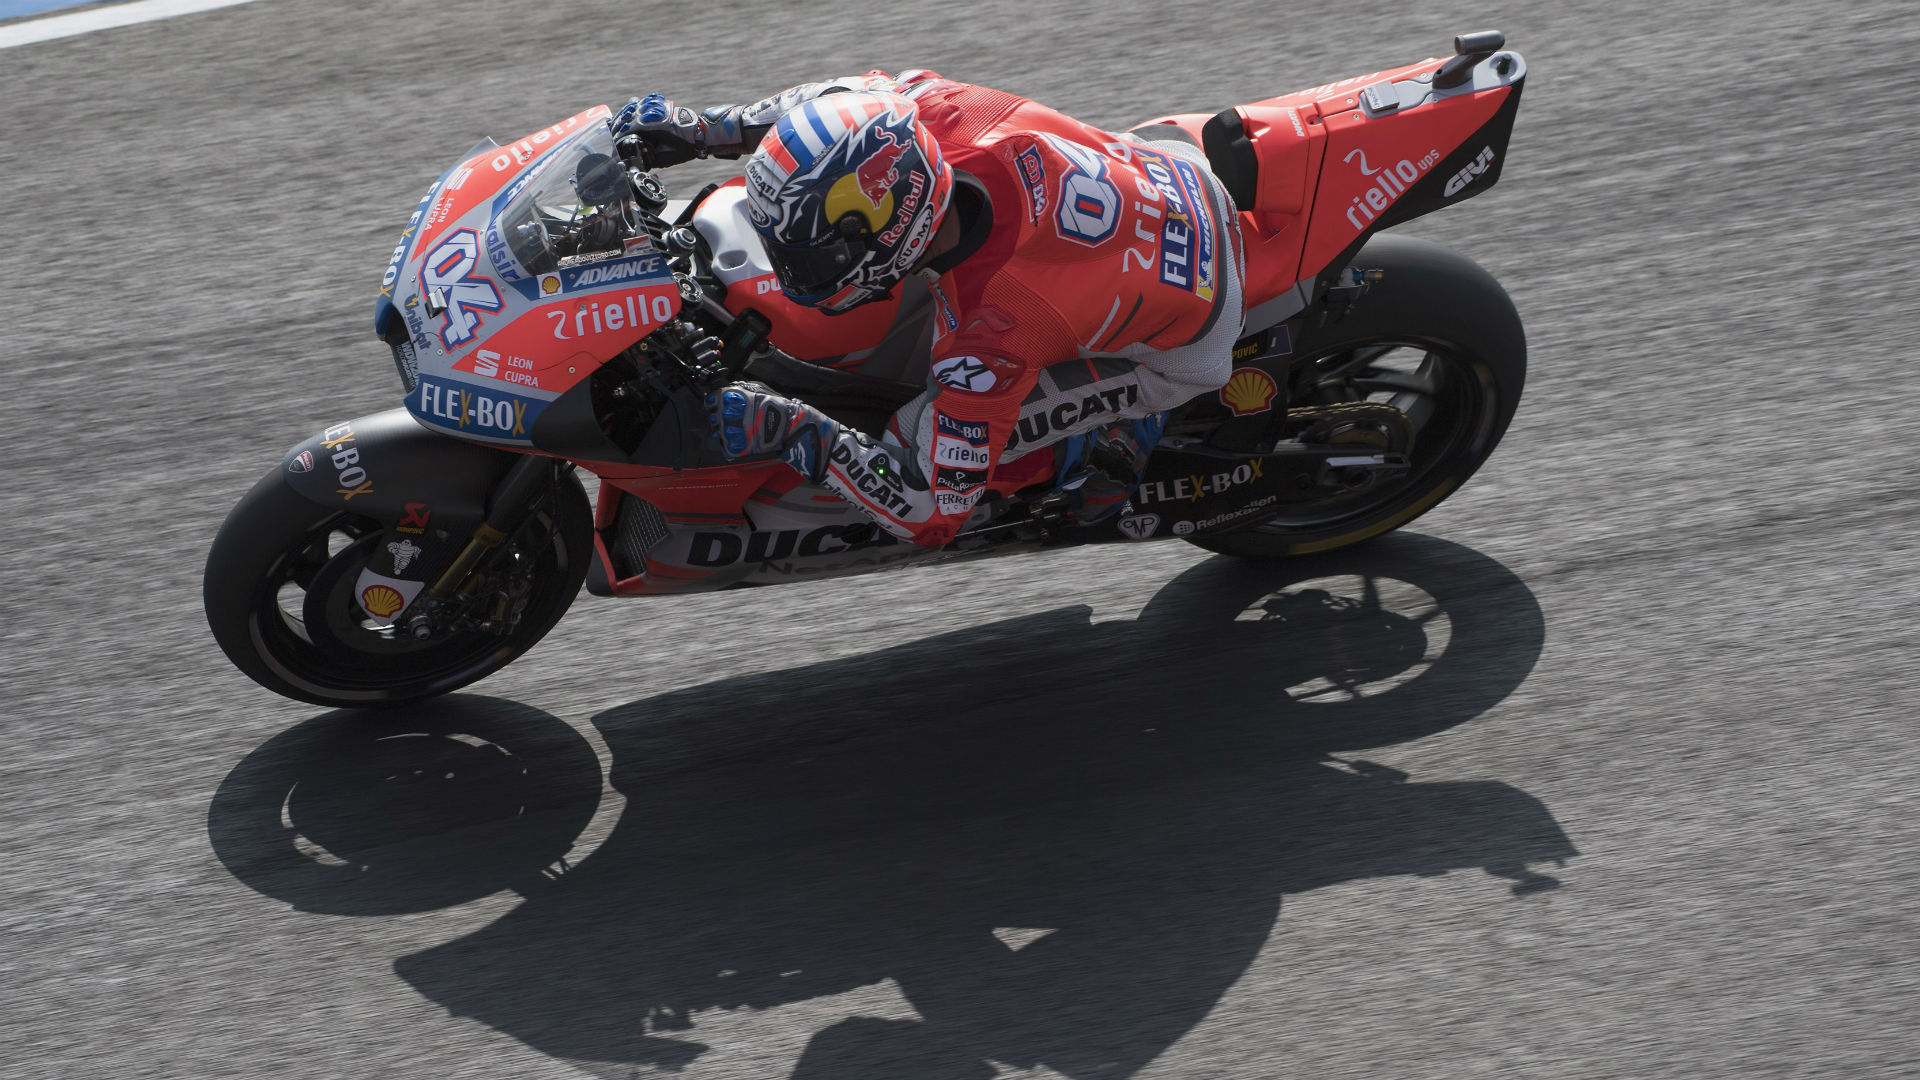 Andrea Dovizioso is unsure whether the wind was the major reason for a difficult FP2 at Termas de Rio Hondo.